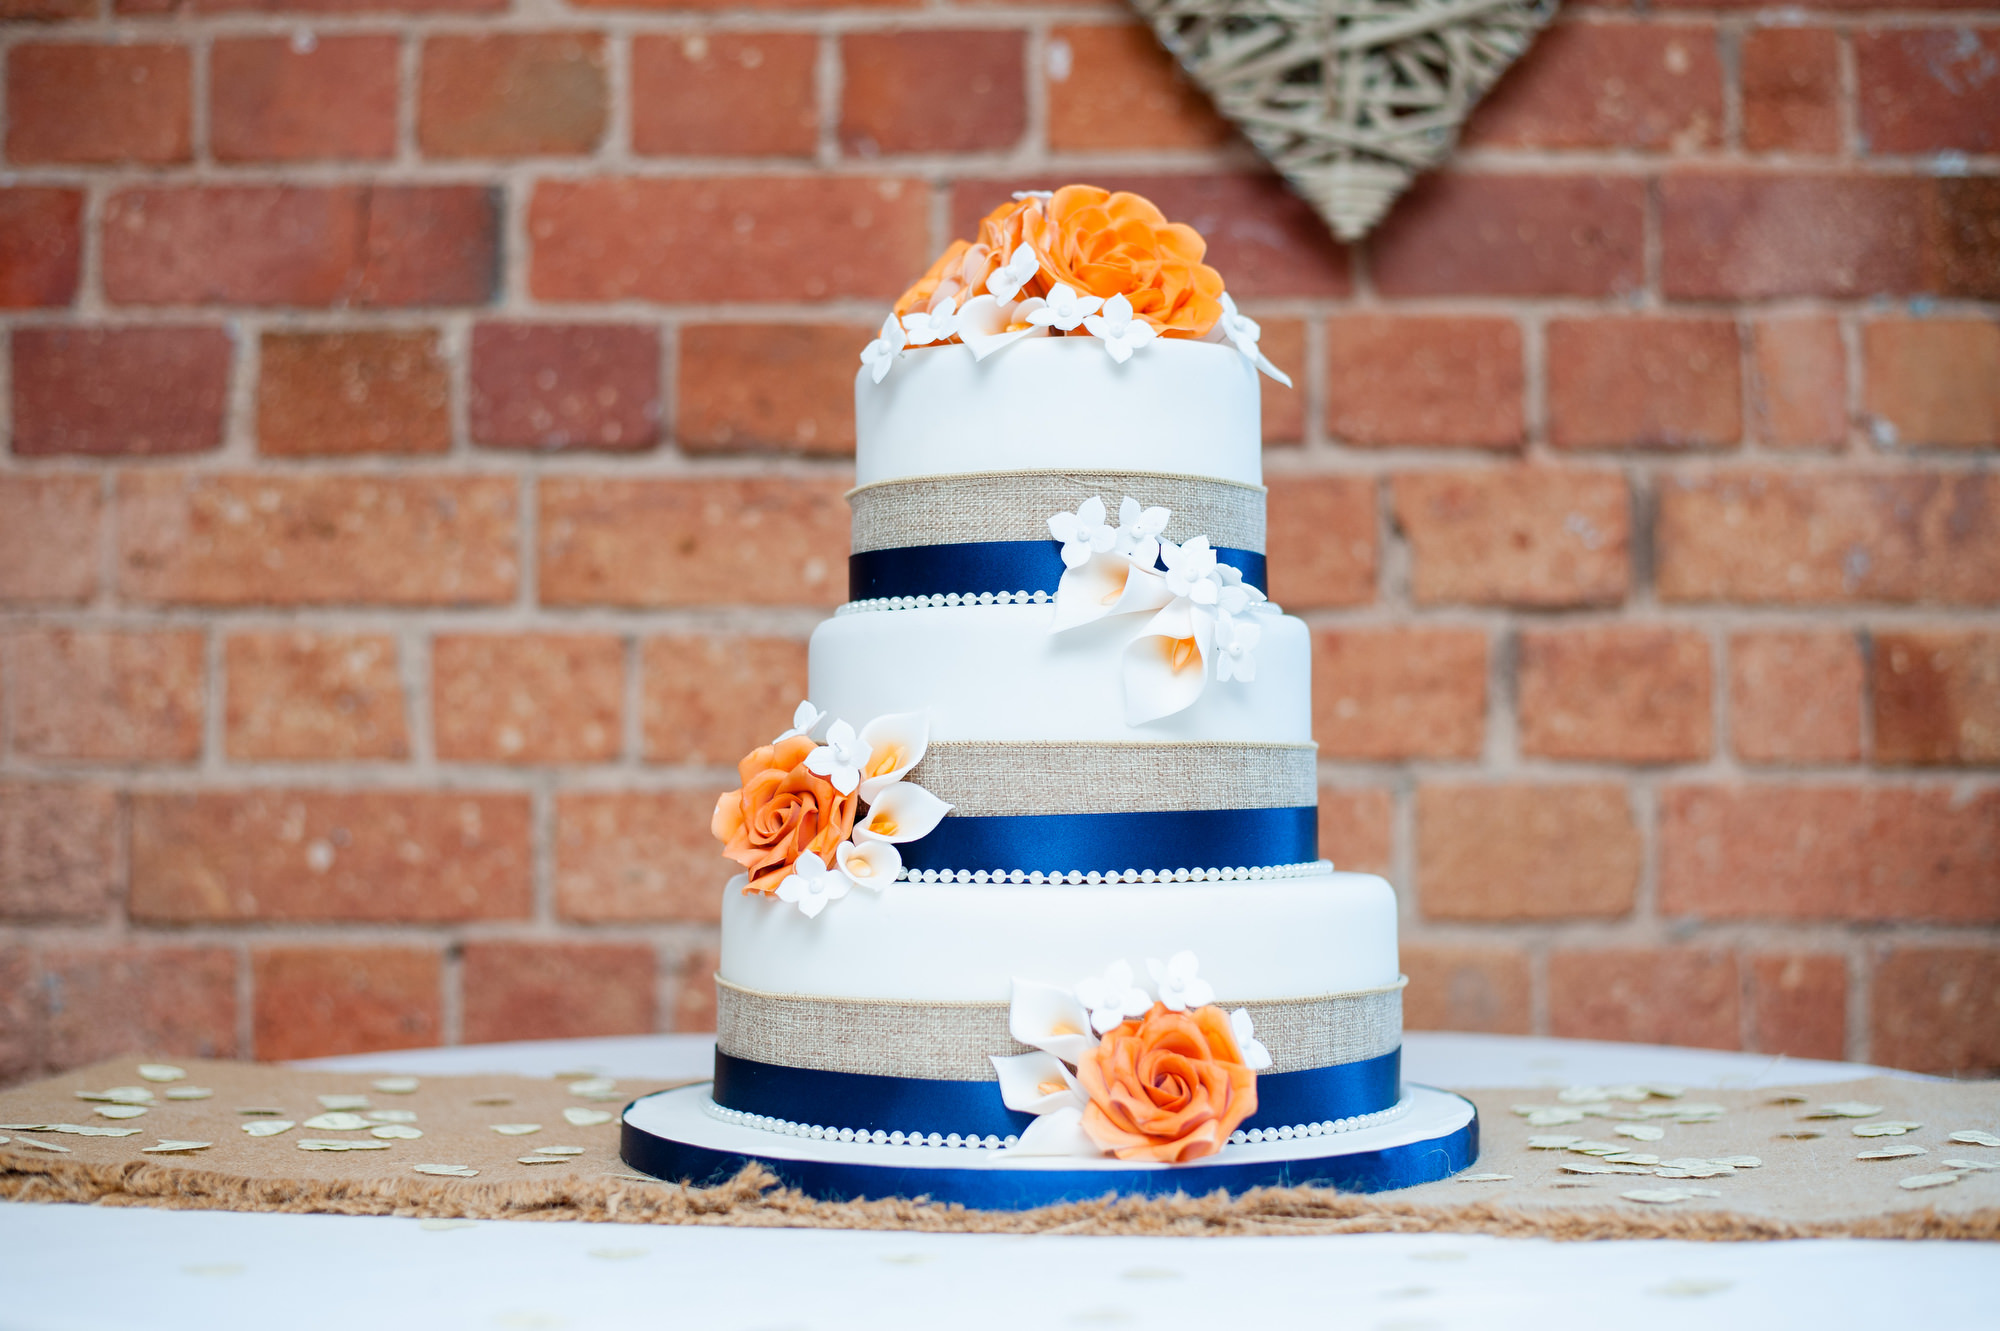 Orange And Blue Wedding Cake With Flowers